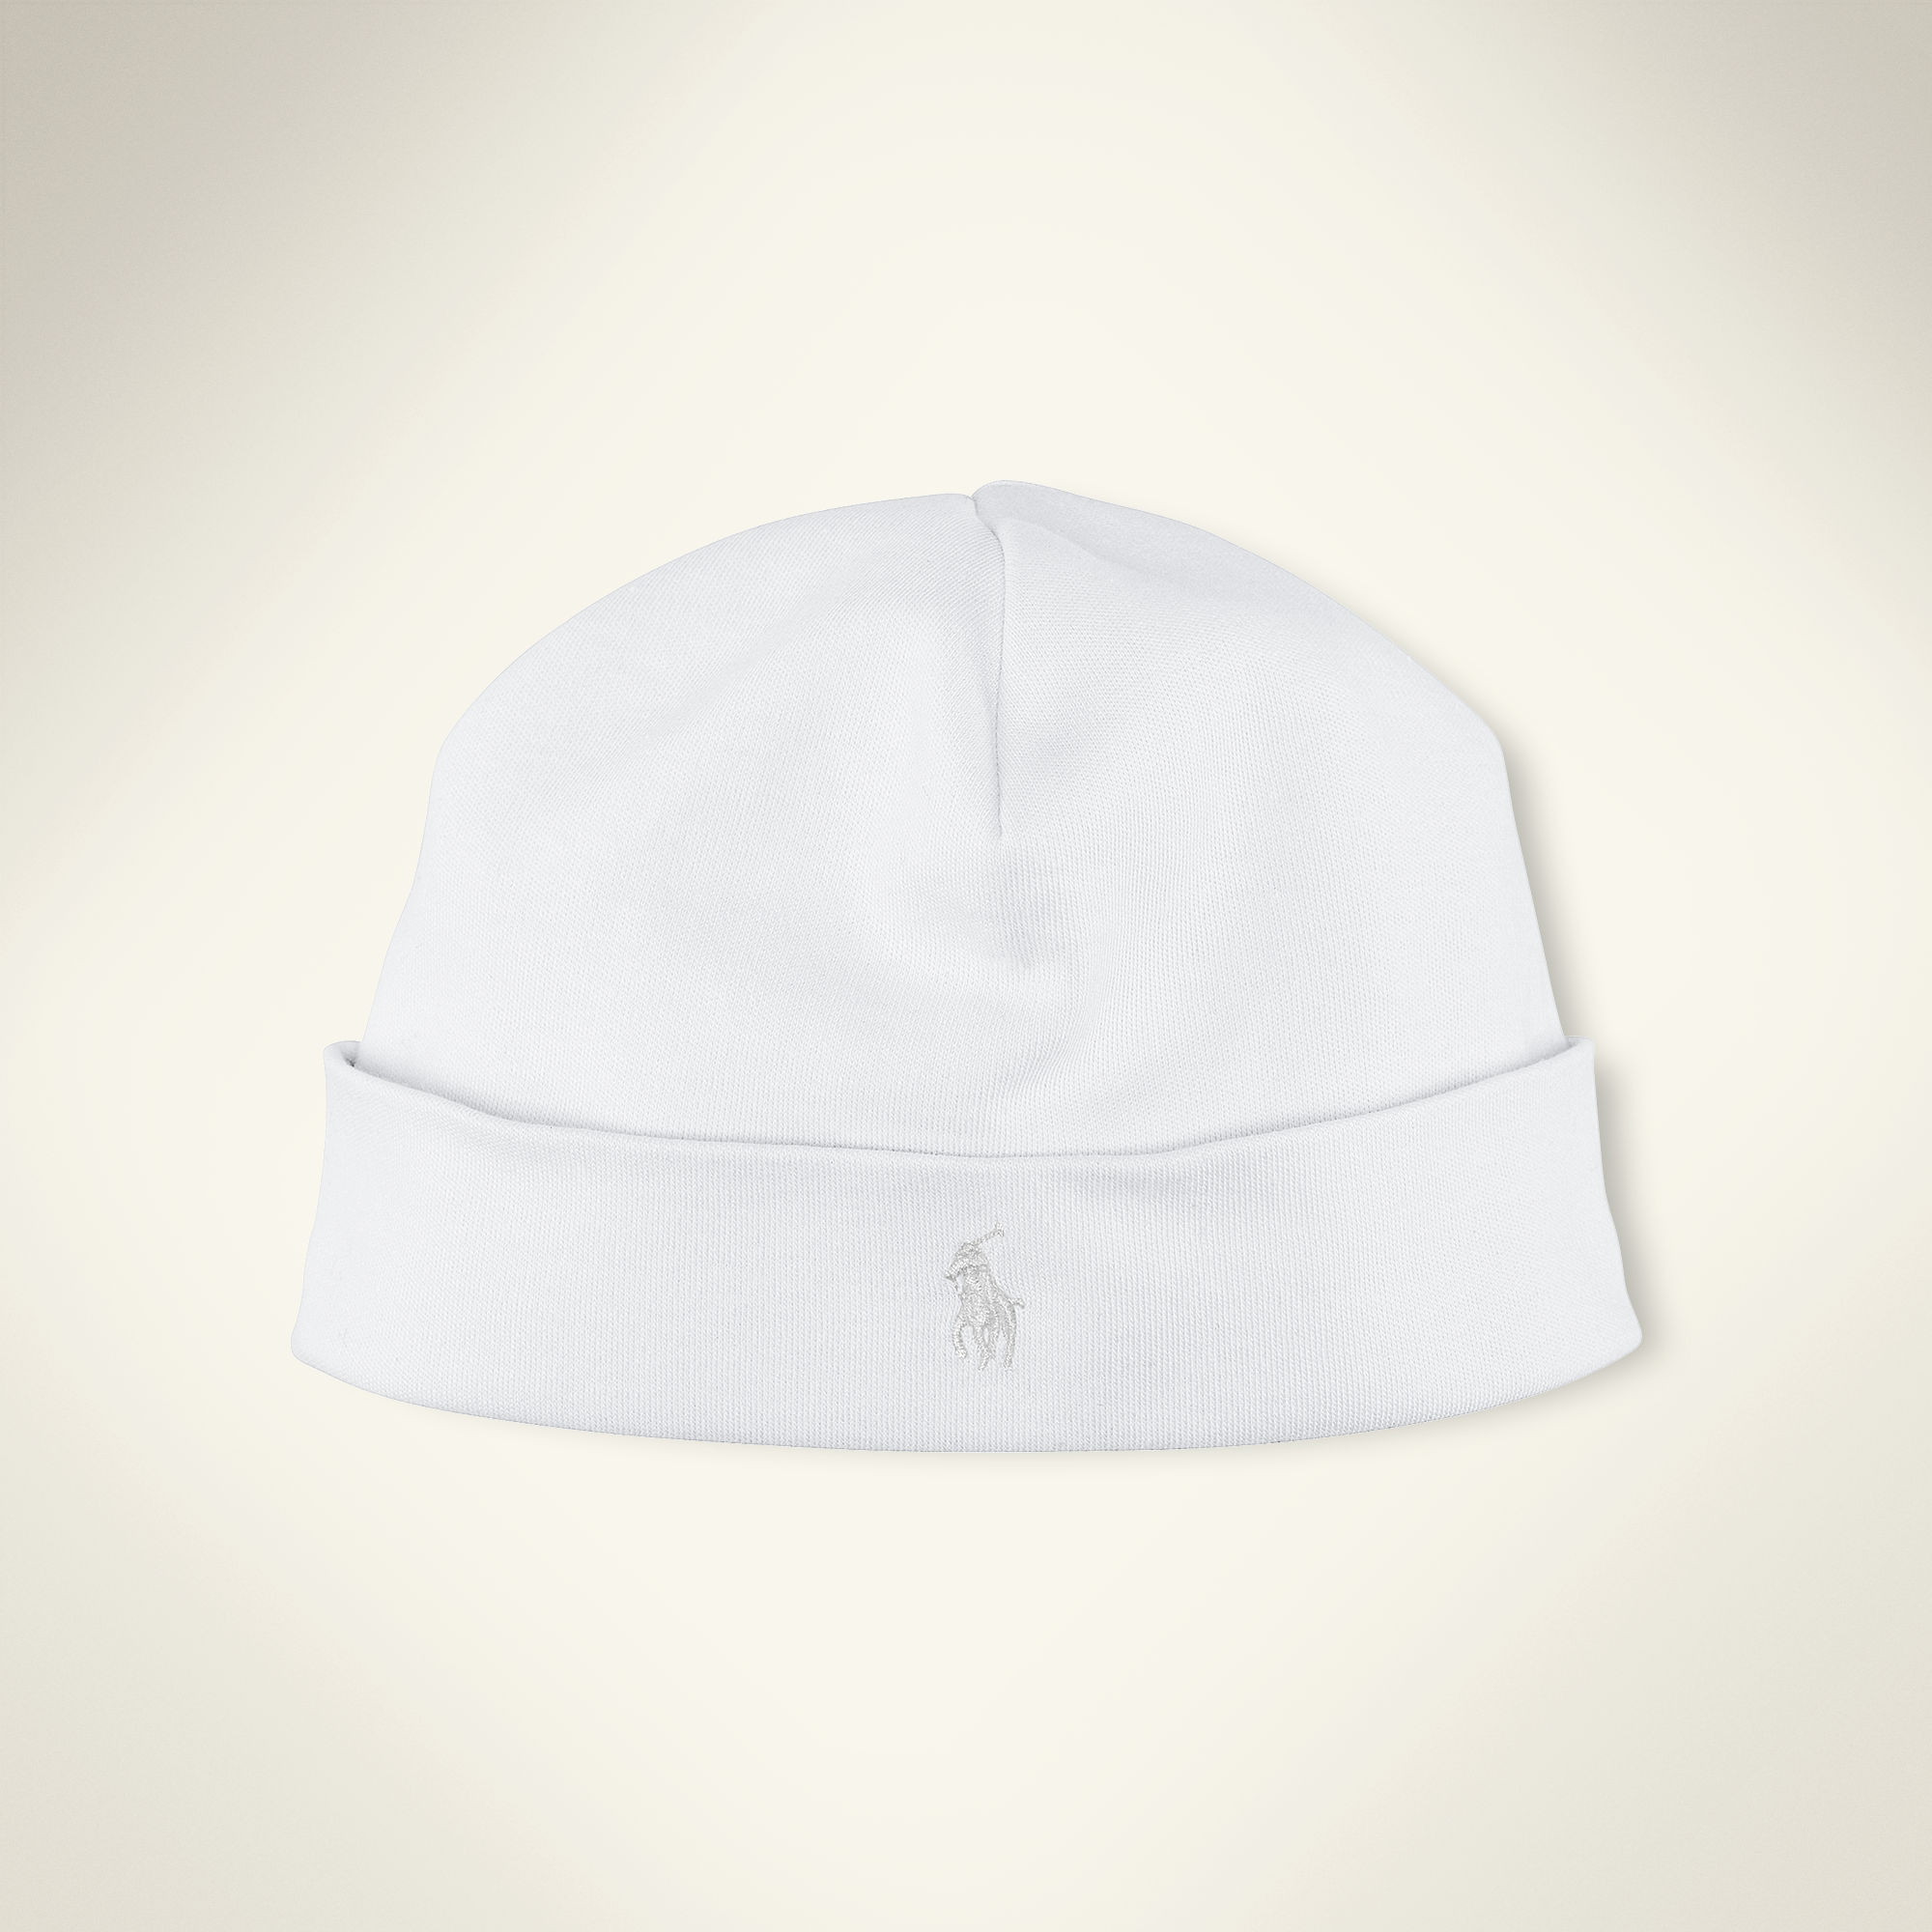 Ralph Lauren White Beanie in White for Men - Lyst 05c5cc1893d